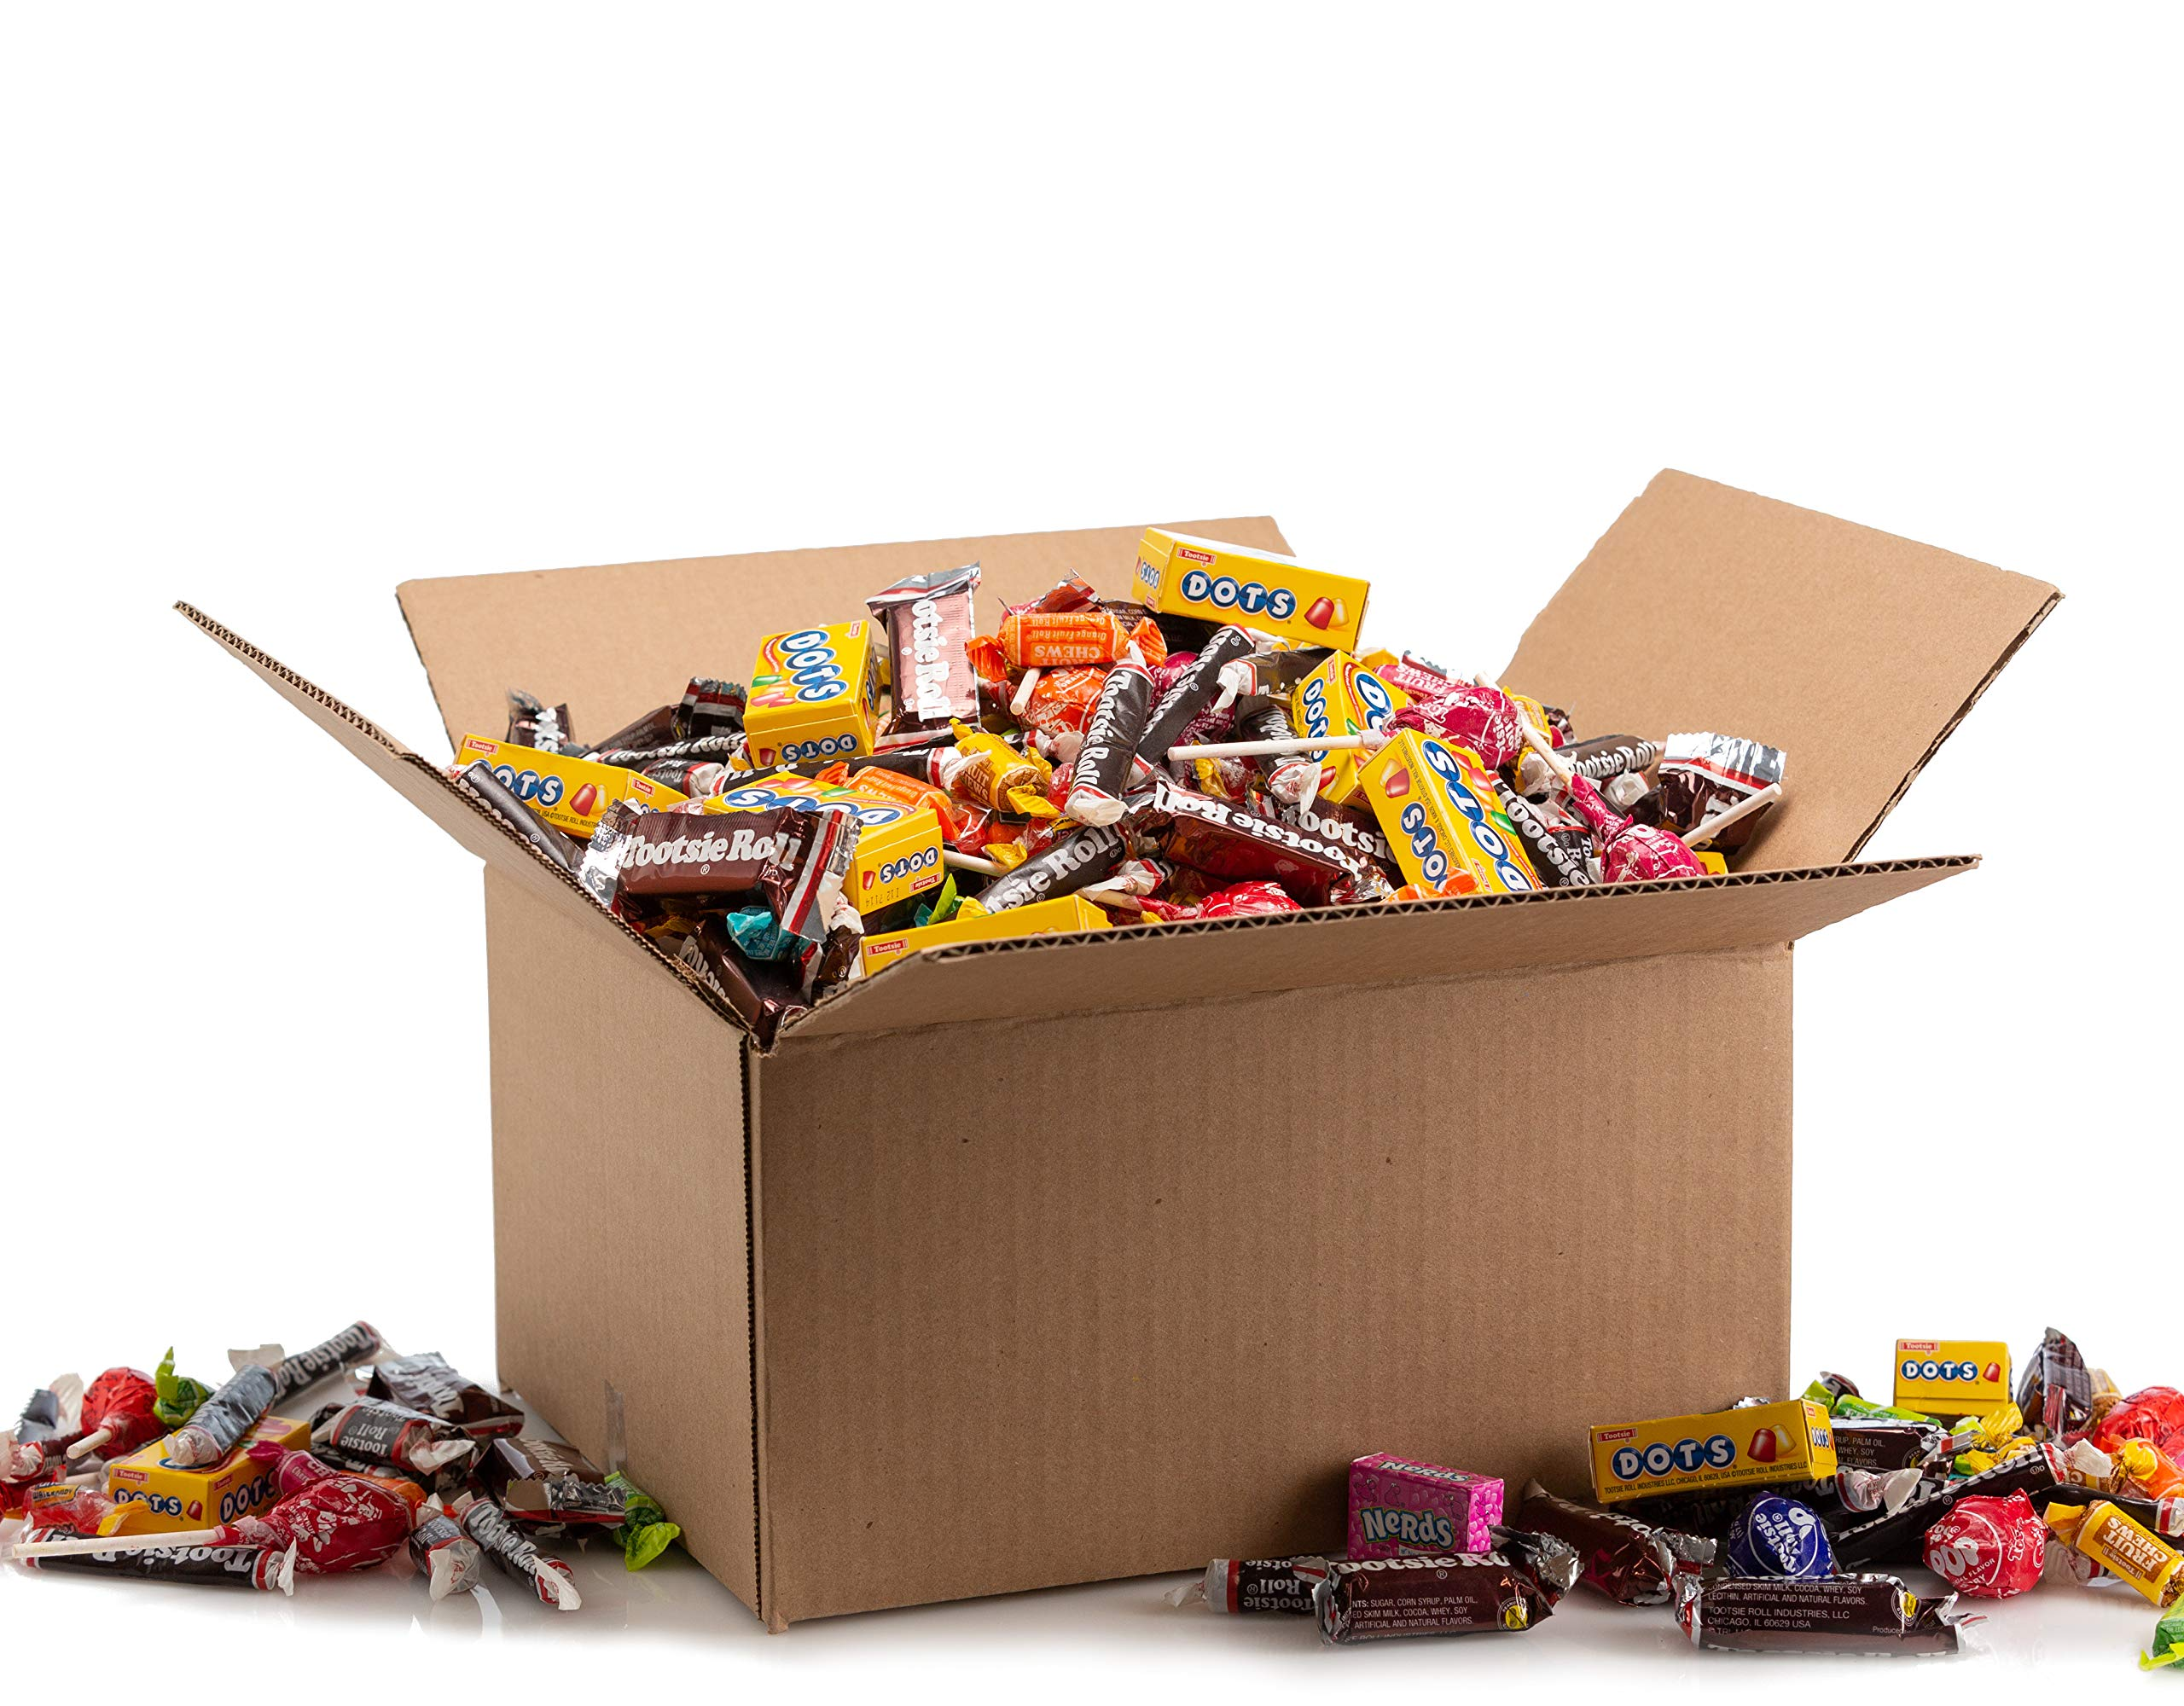 Assorted Bulk Candy, Individually Wrapped: 12 LB Box Variety Pack with Tootsie Rolls, Tootsie Pops, Jolly Ranchers, Nerds, Assorted Laffy Taffy's & More! Great for Holiday and Party Treats by Betalicious (Image #1)